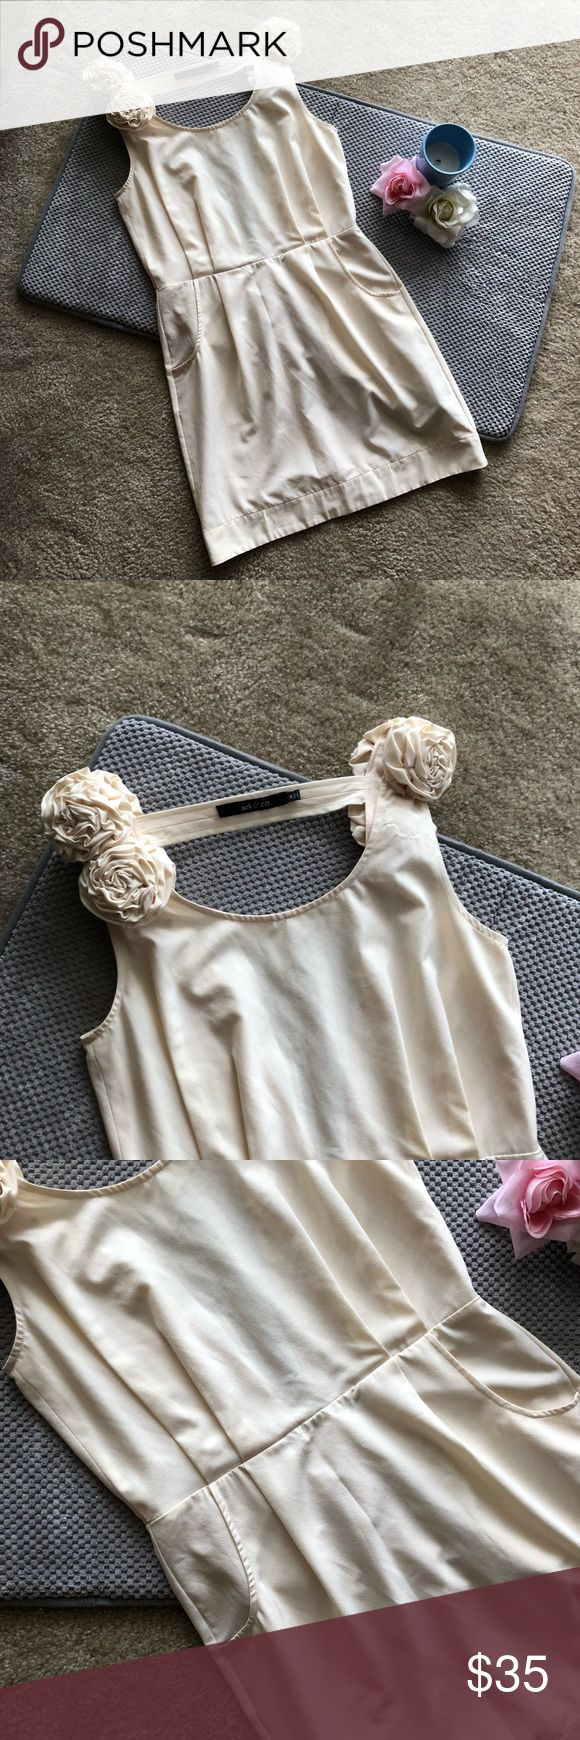 """Ark & Co Cream Cocktail Dress Cream colored ark & co. cocktail dress. Features fun flower details, pockets, and a sexy plunging back. Perfect for prom!  Excellent used condition. Some loose stitching on left side, and missing one flower on front left side (barely noticeable).   -Size M. Approximate measurements taken laying flat: Bust 16.5"""" Waist 14.2"""" Hips 18.5"""" Length 33""""  -Shell polyester 92%, spandex 8% Lining 100% polyester Ark & Co Dresses Mini"""